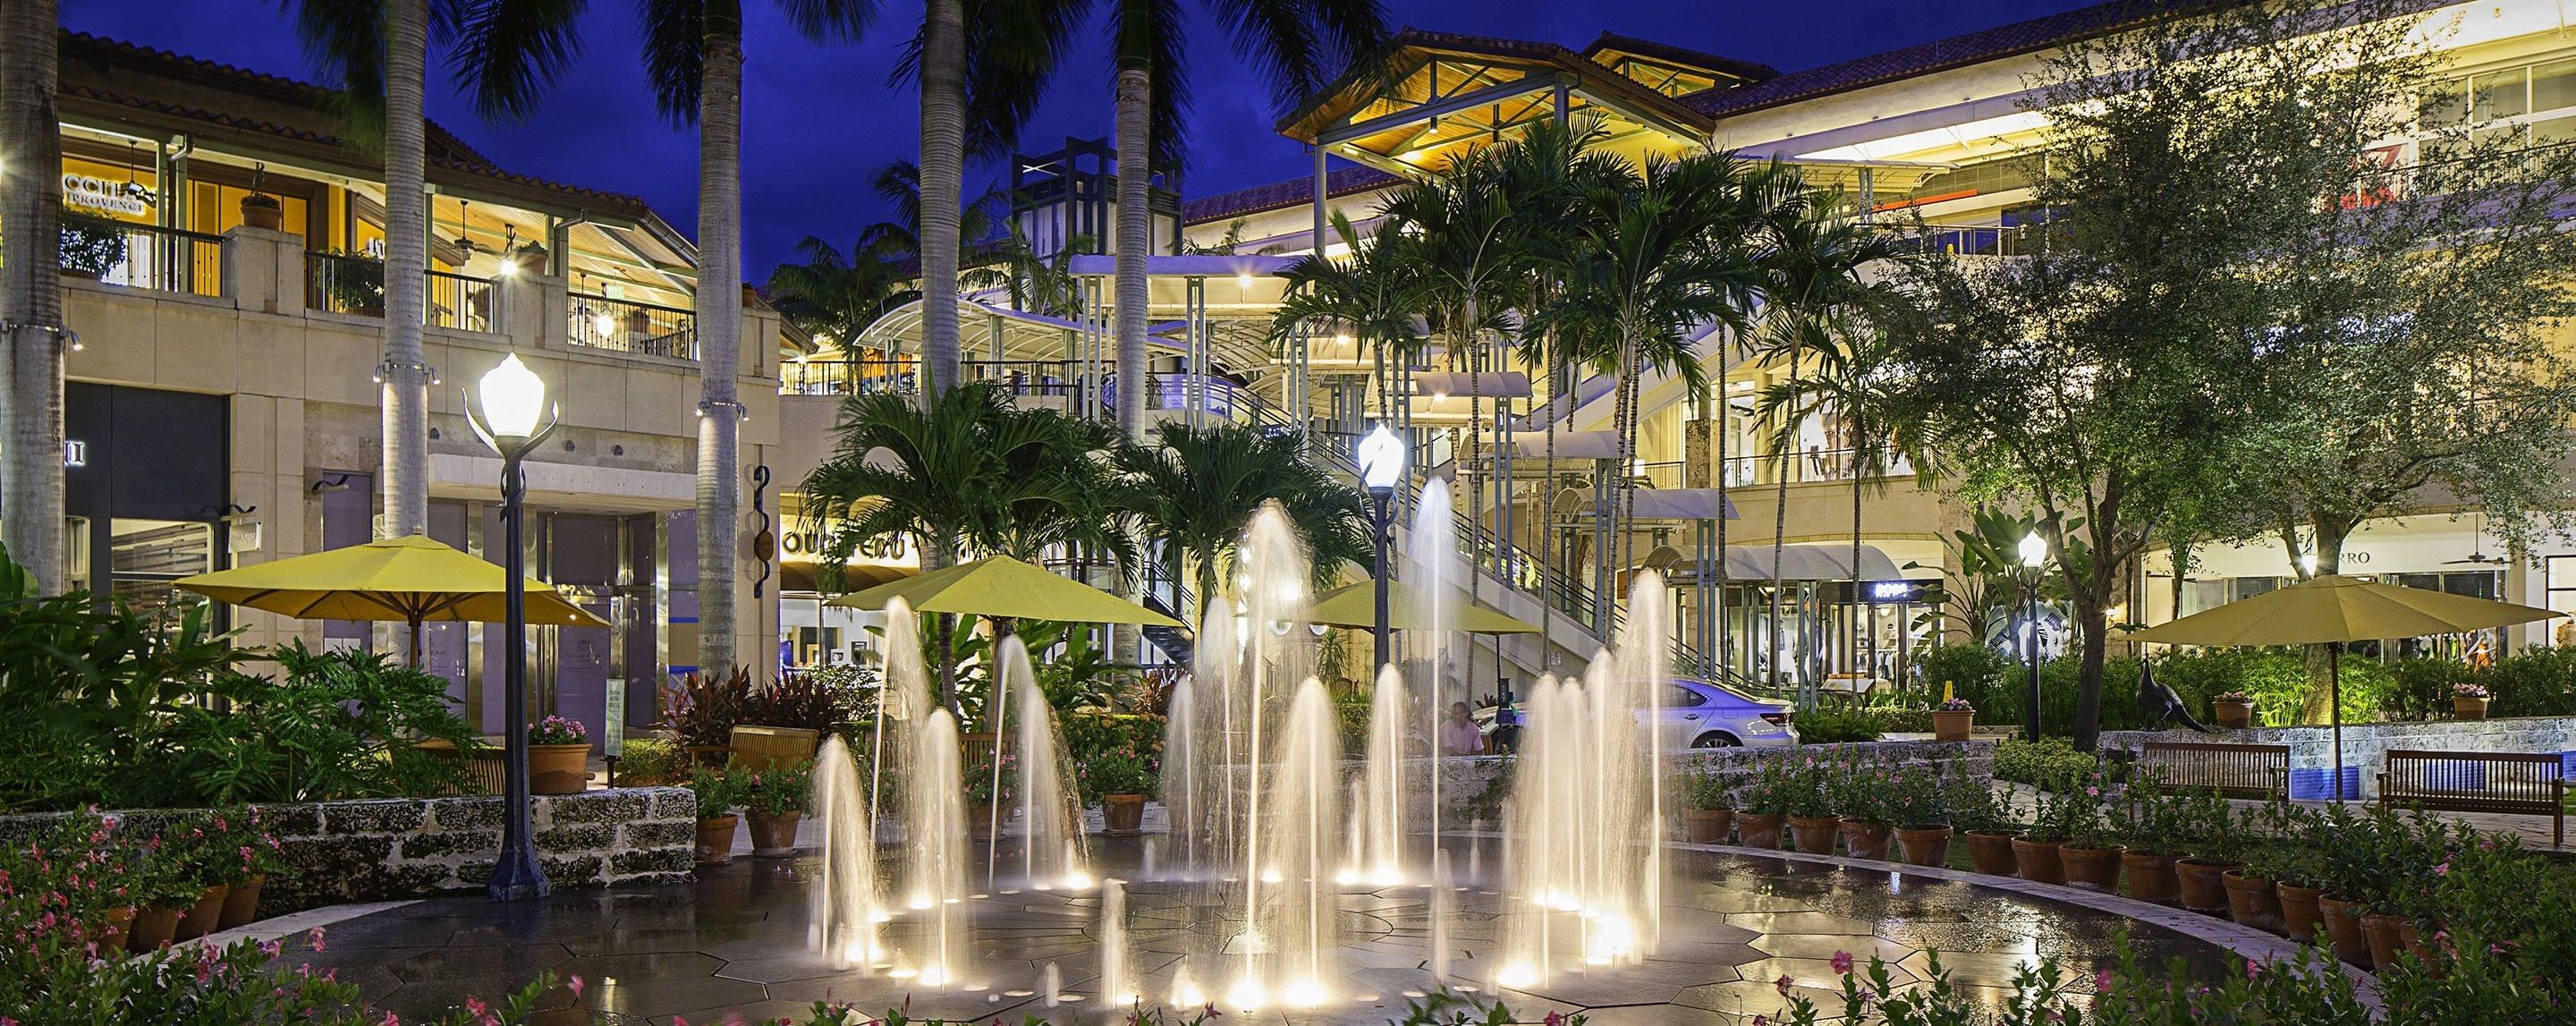 Outside a GGP property at night, a fountain is lit up surrounded by palm trees and potted plants to decorate the property.